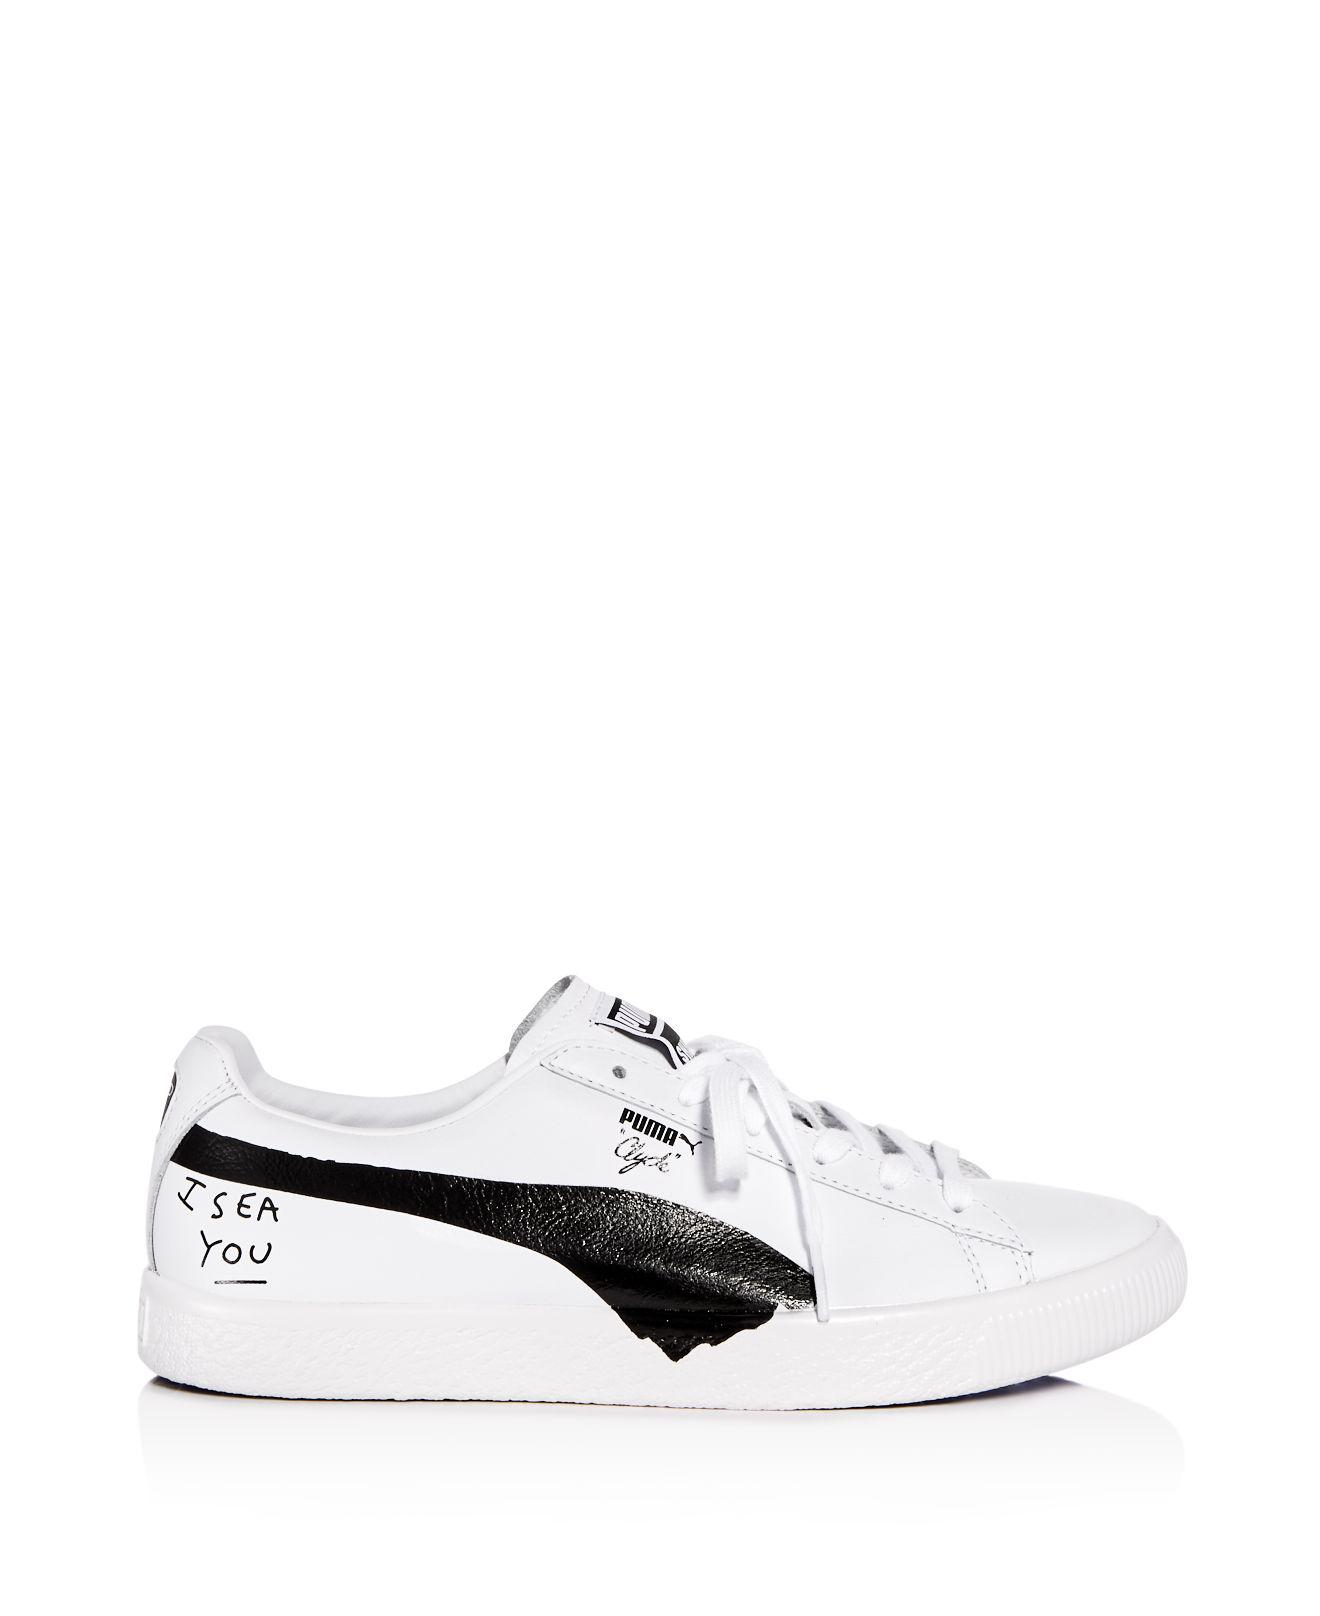 Puma X Shantell Martin Women's Clyde Leather Lace Up Sneakers YKPNym6f